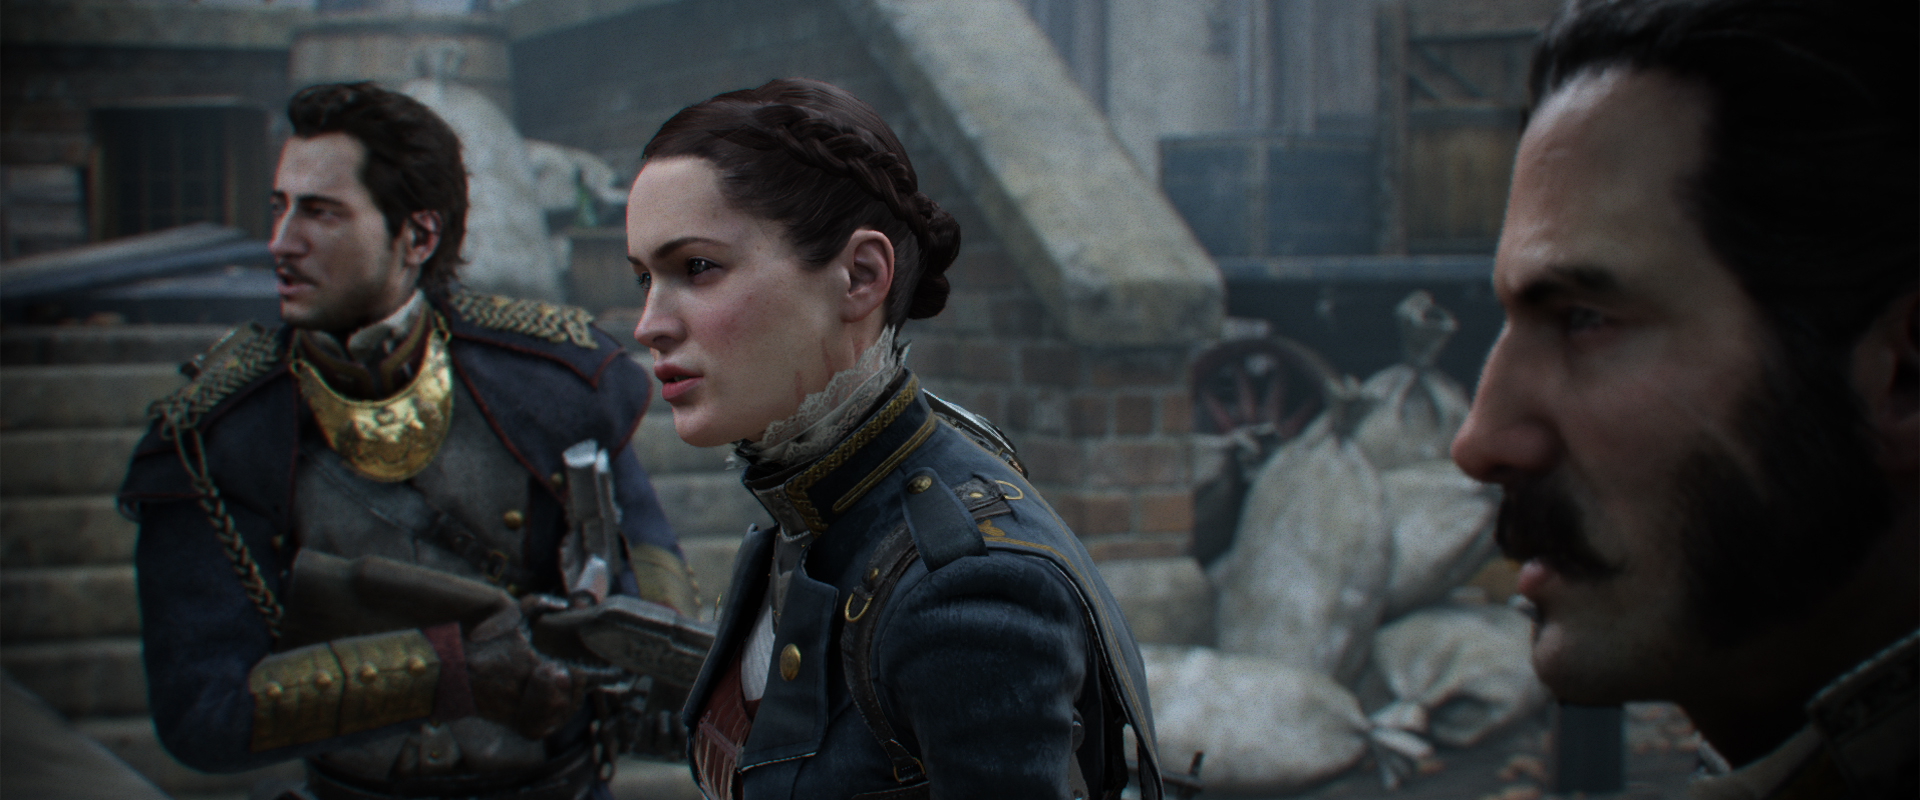 Screenshot for the Developer's video game  The Order 1886.